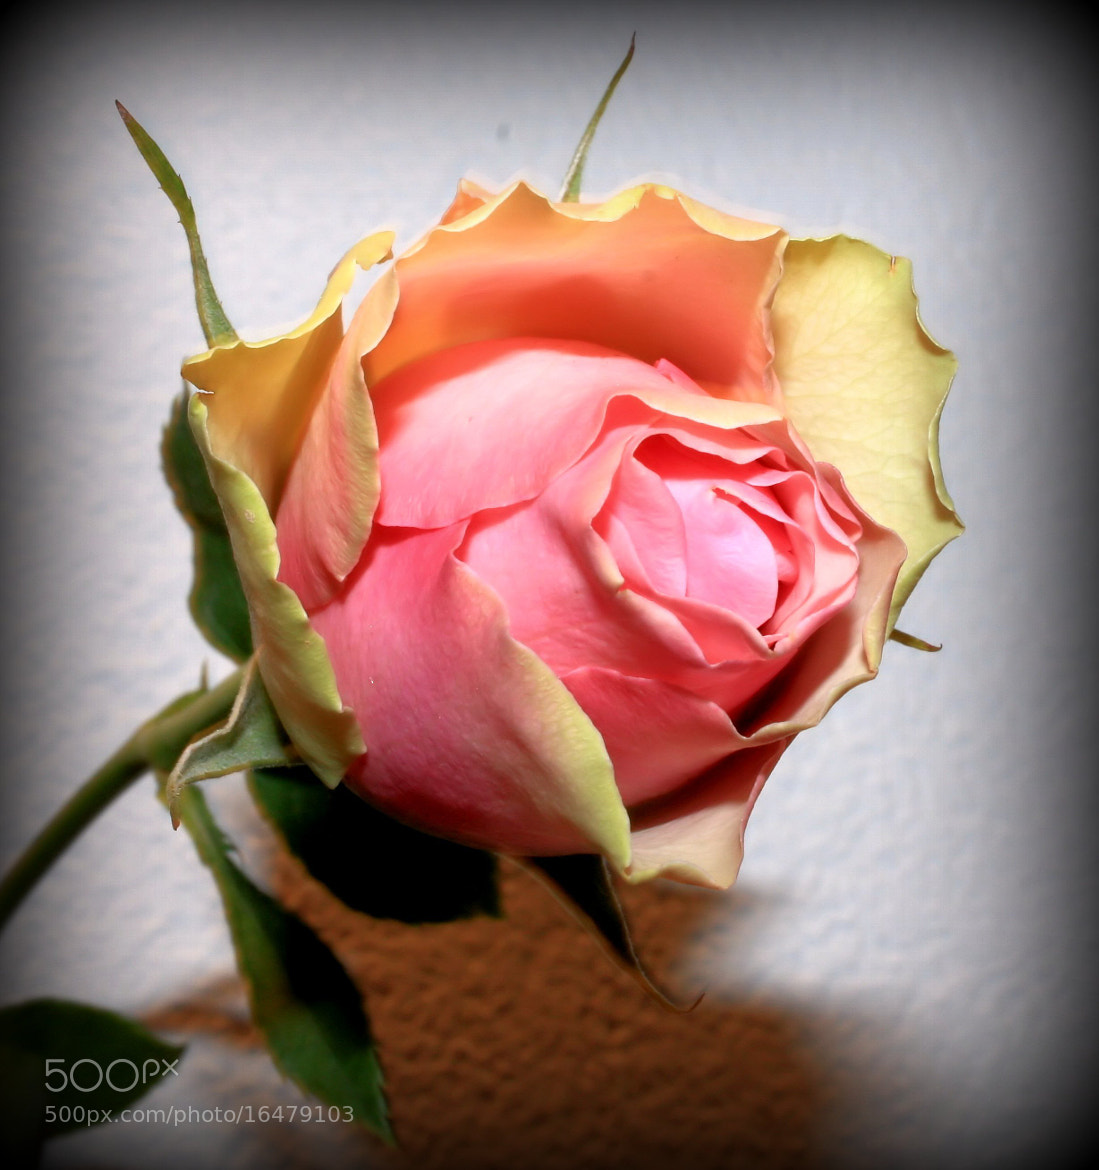 Photograph Rose by karin van buren on 500px